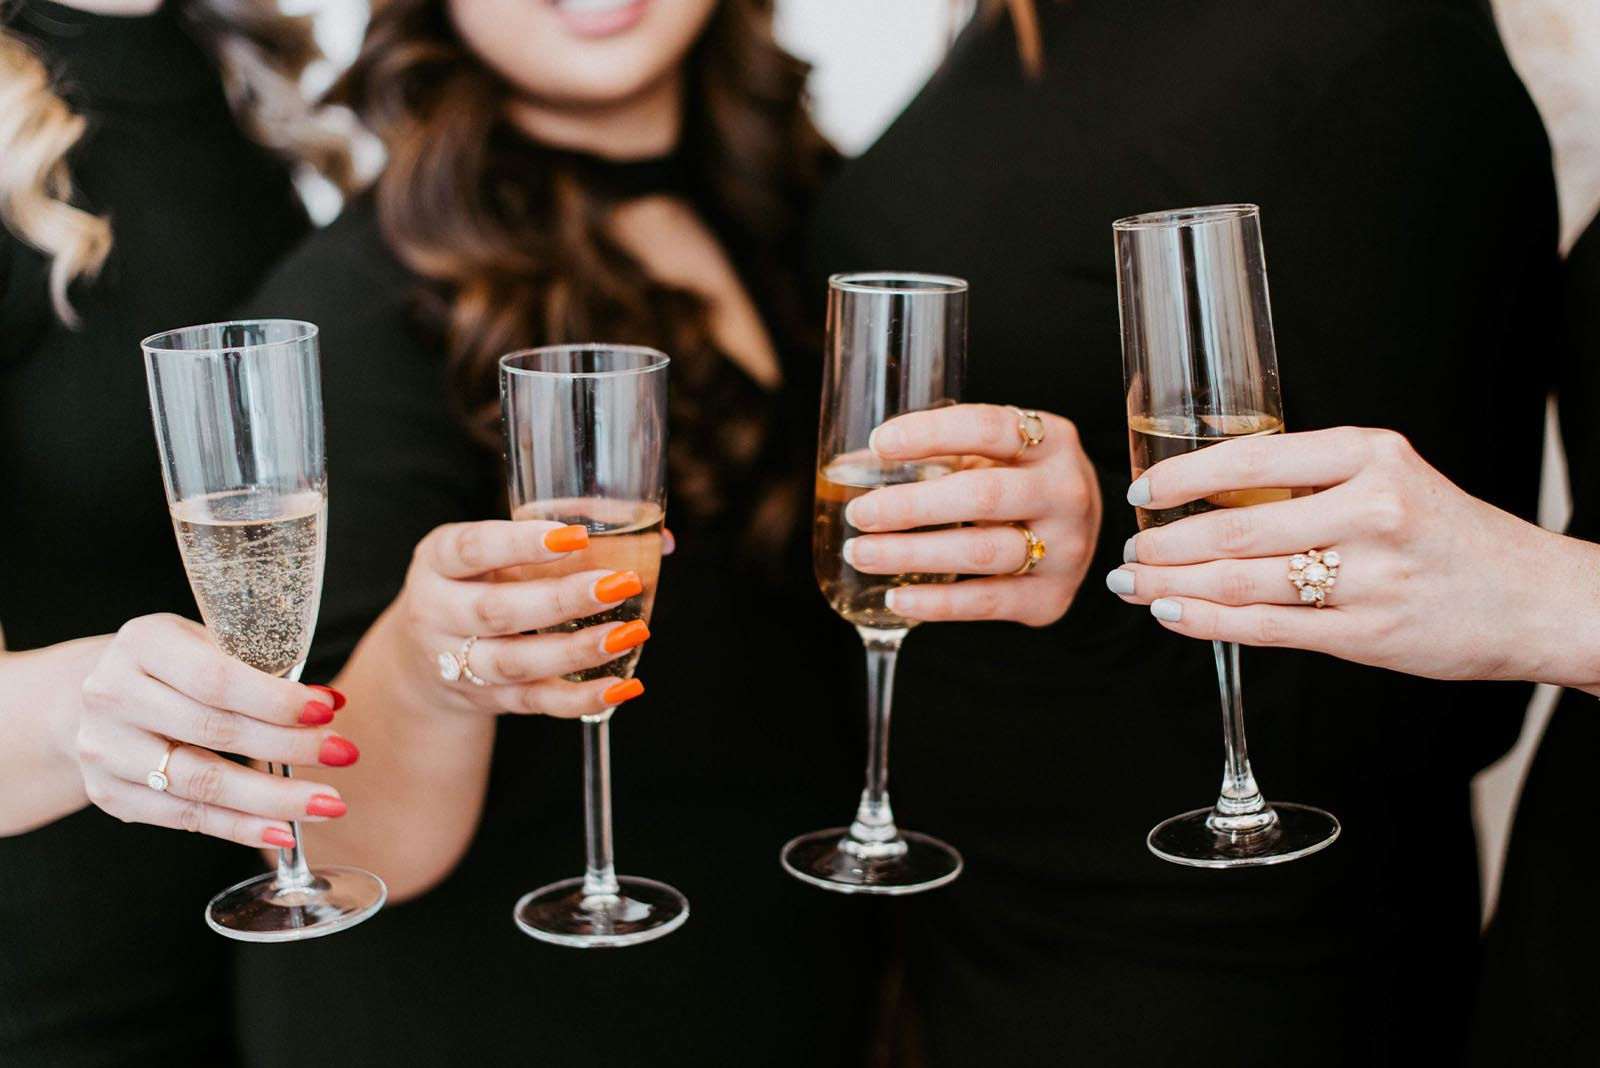 Revelle Bridal - Team Champagne Toast - Photo Credit Laura Kelly Photography